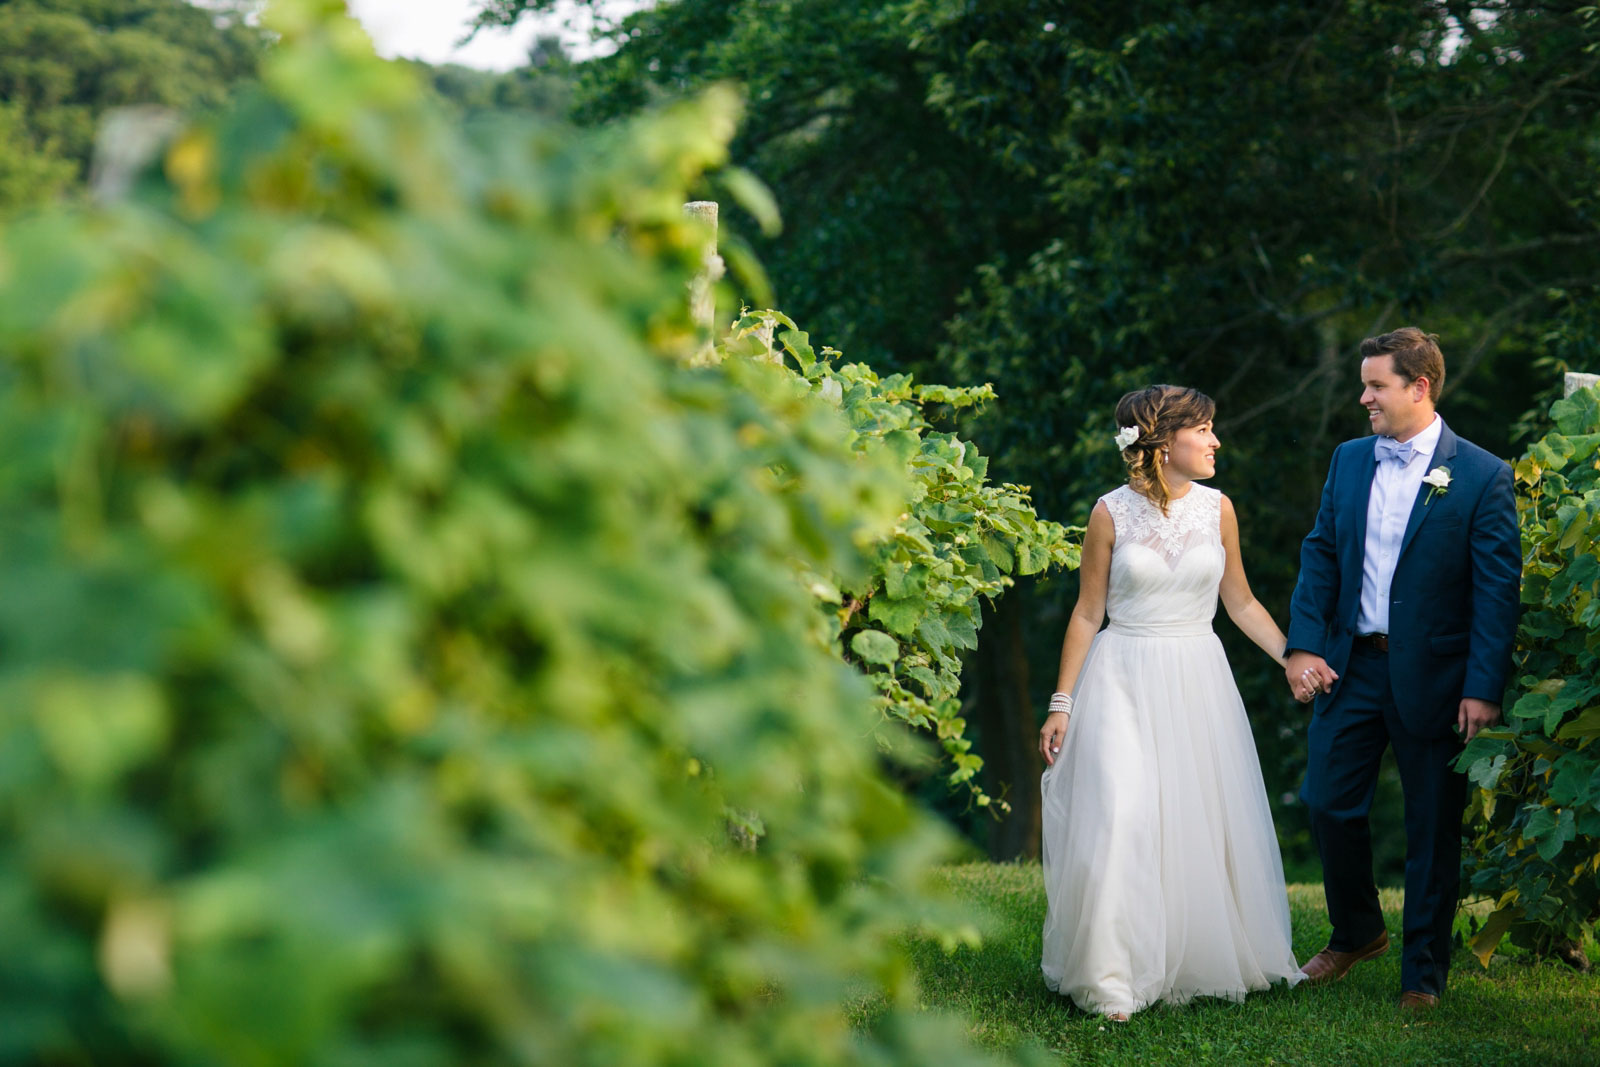 Bride and groom portrait walking through path of grape vines, bride and groom holding hands talking